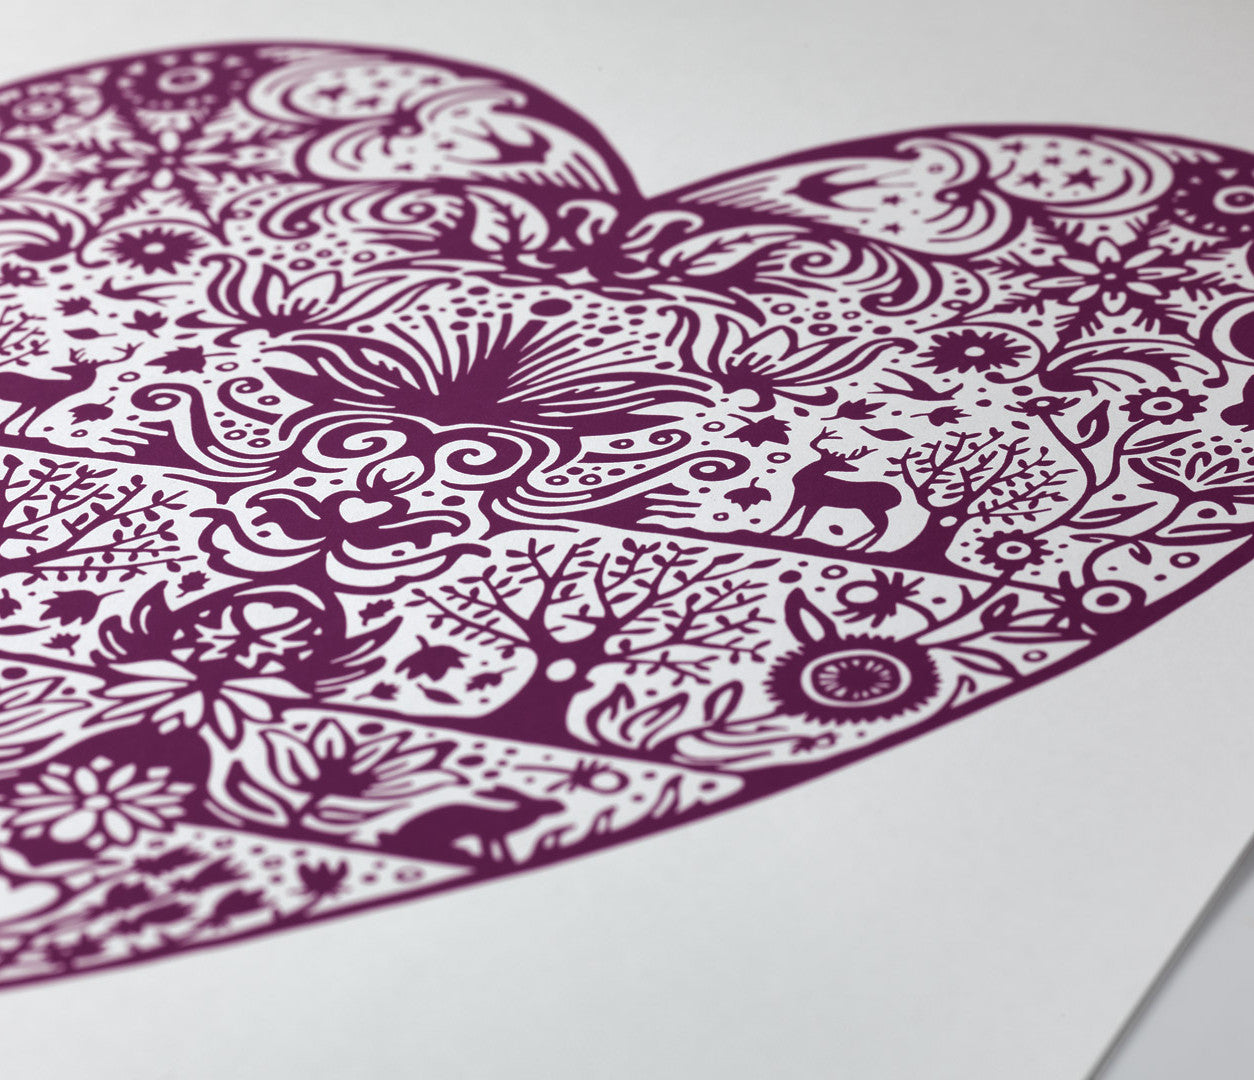 Close Up of My Heart Print in Dark Mulberry